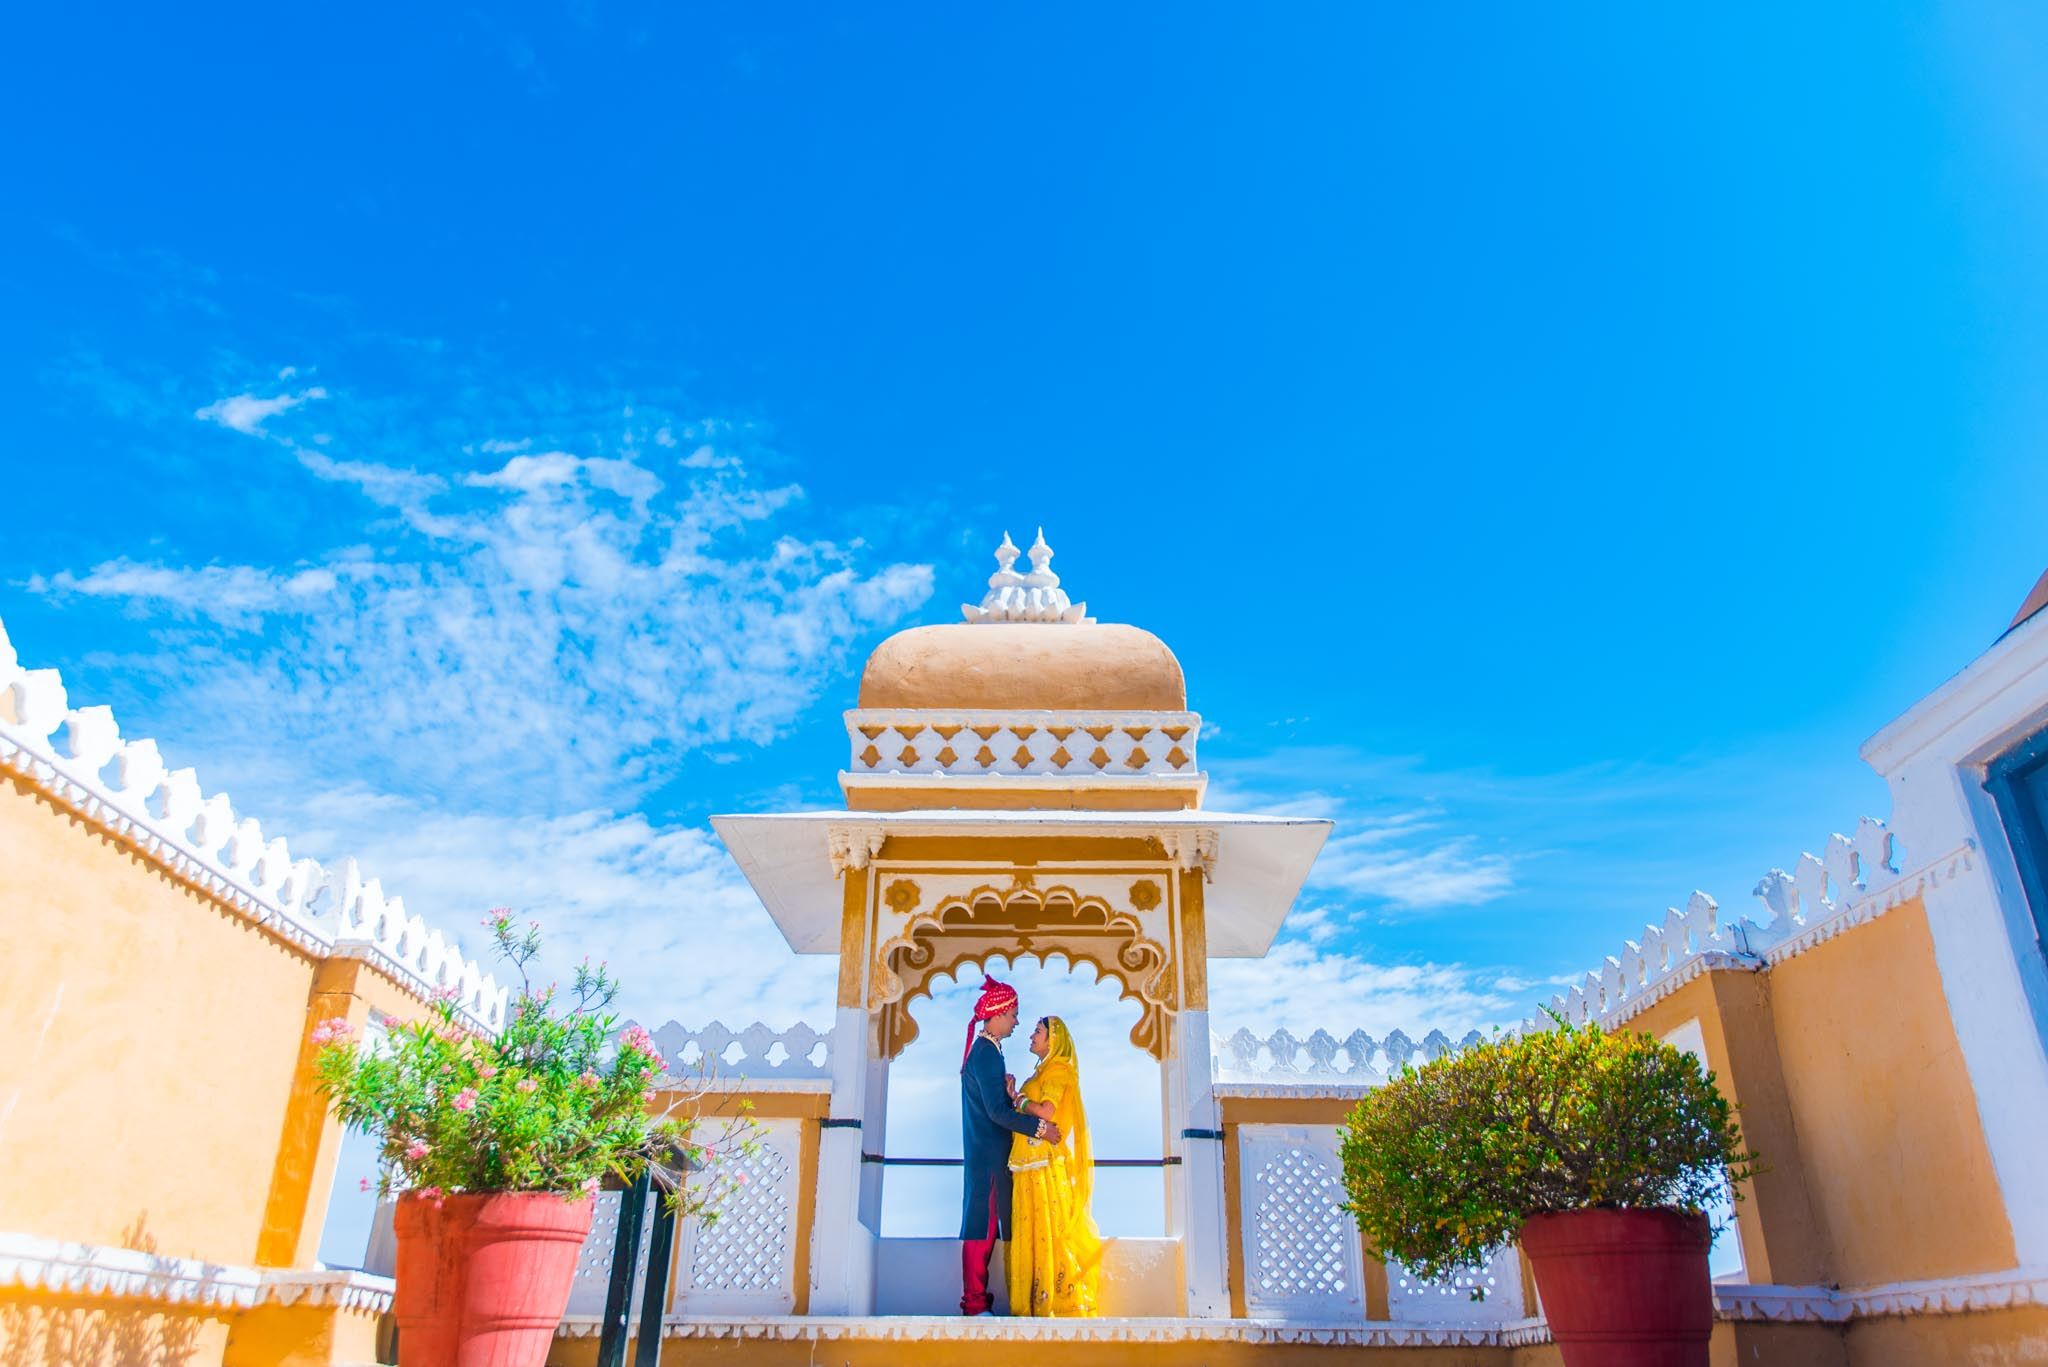 udaipur-palace-destination-wedding-deogarh-mahal-devgarh-51